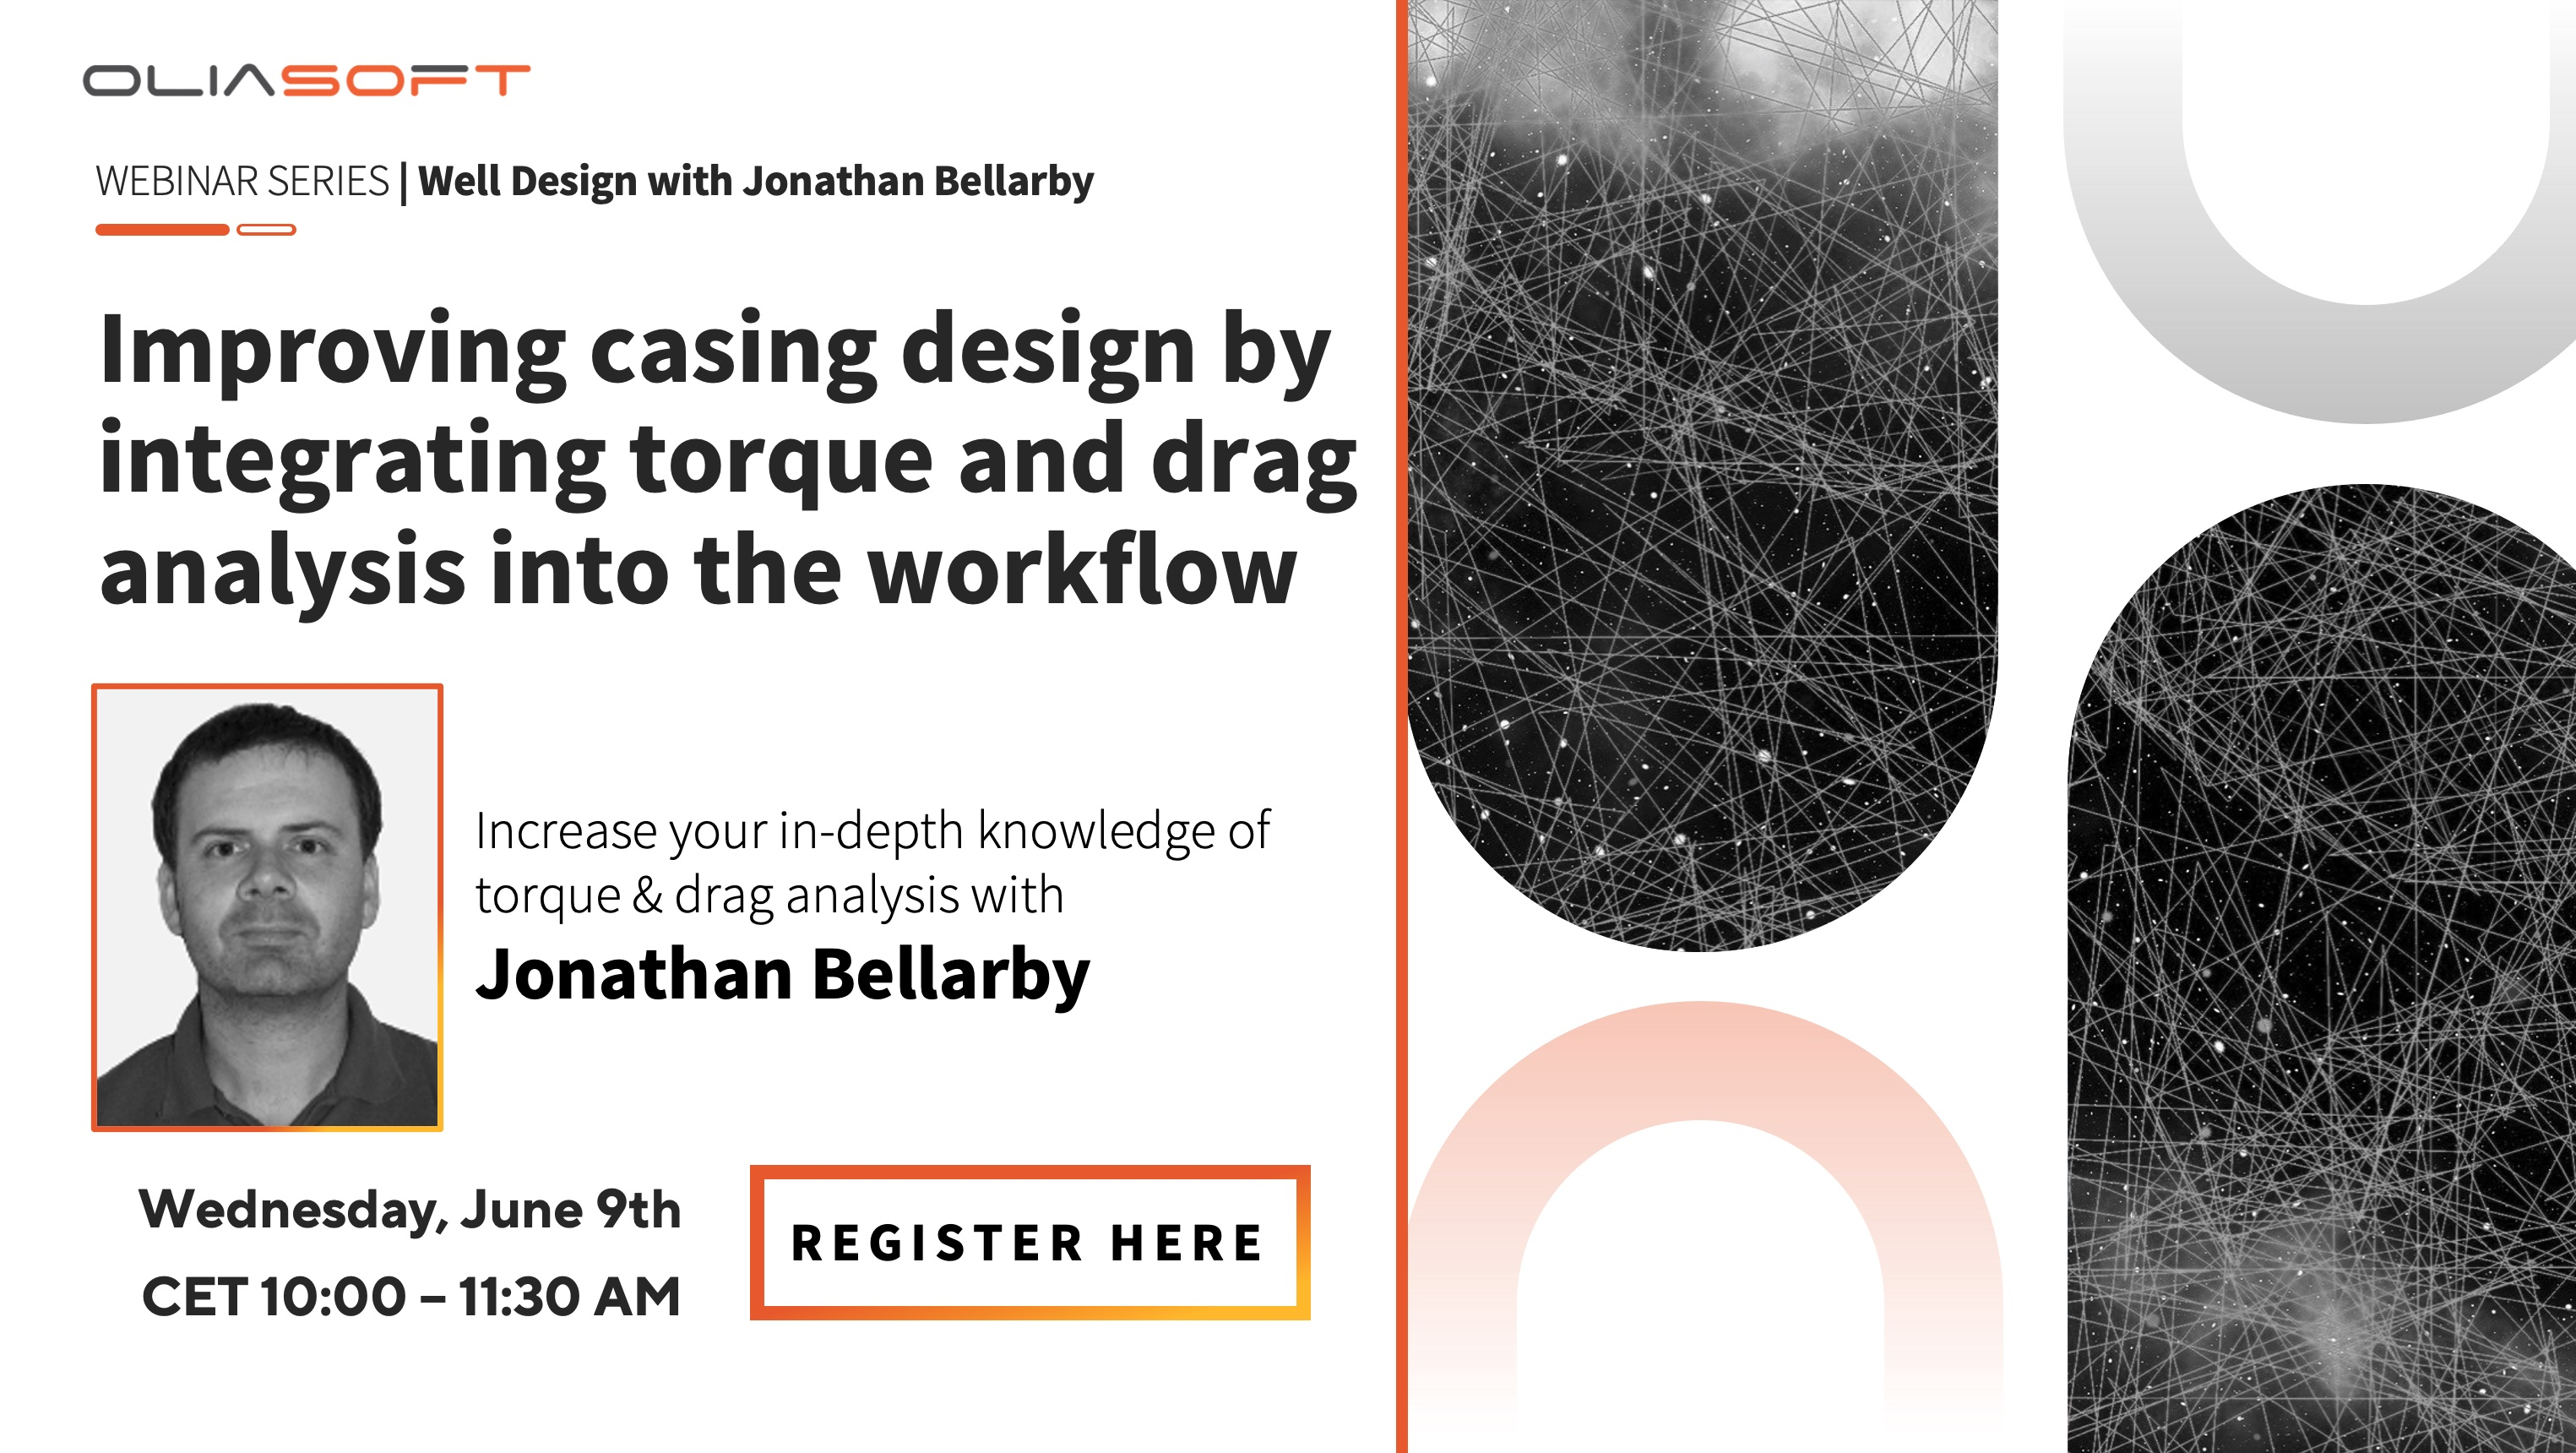 Webinar #3 Improving casing design by integrating torque and drag analysis into the workflow